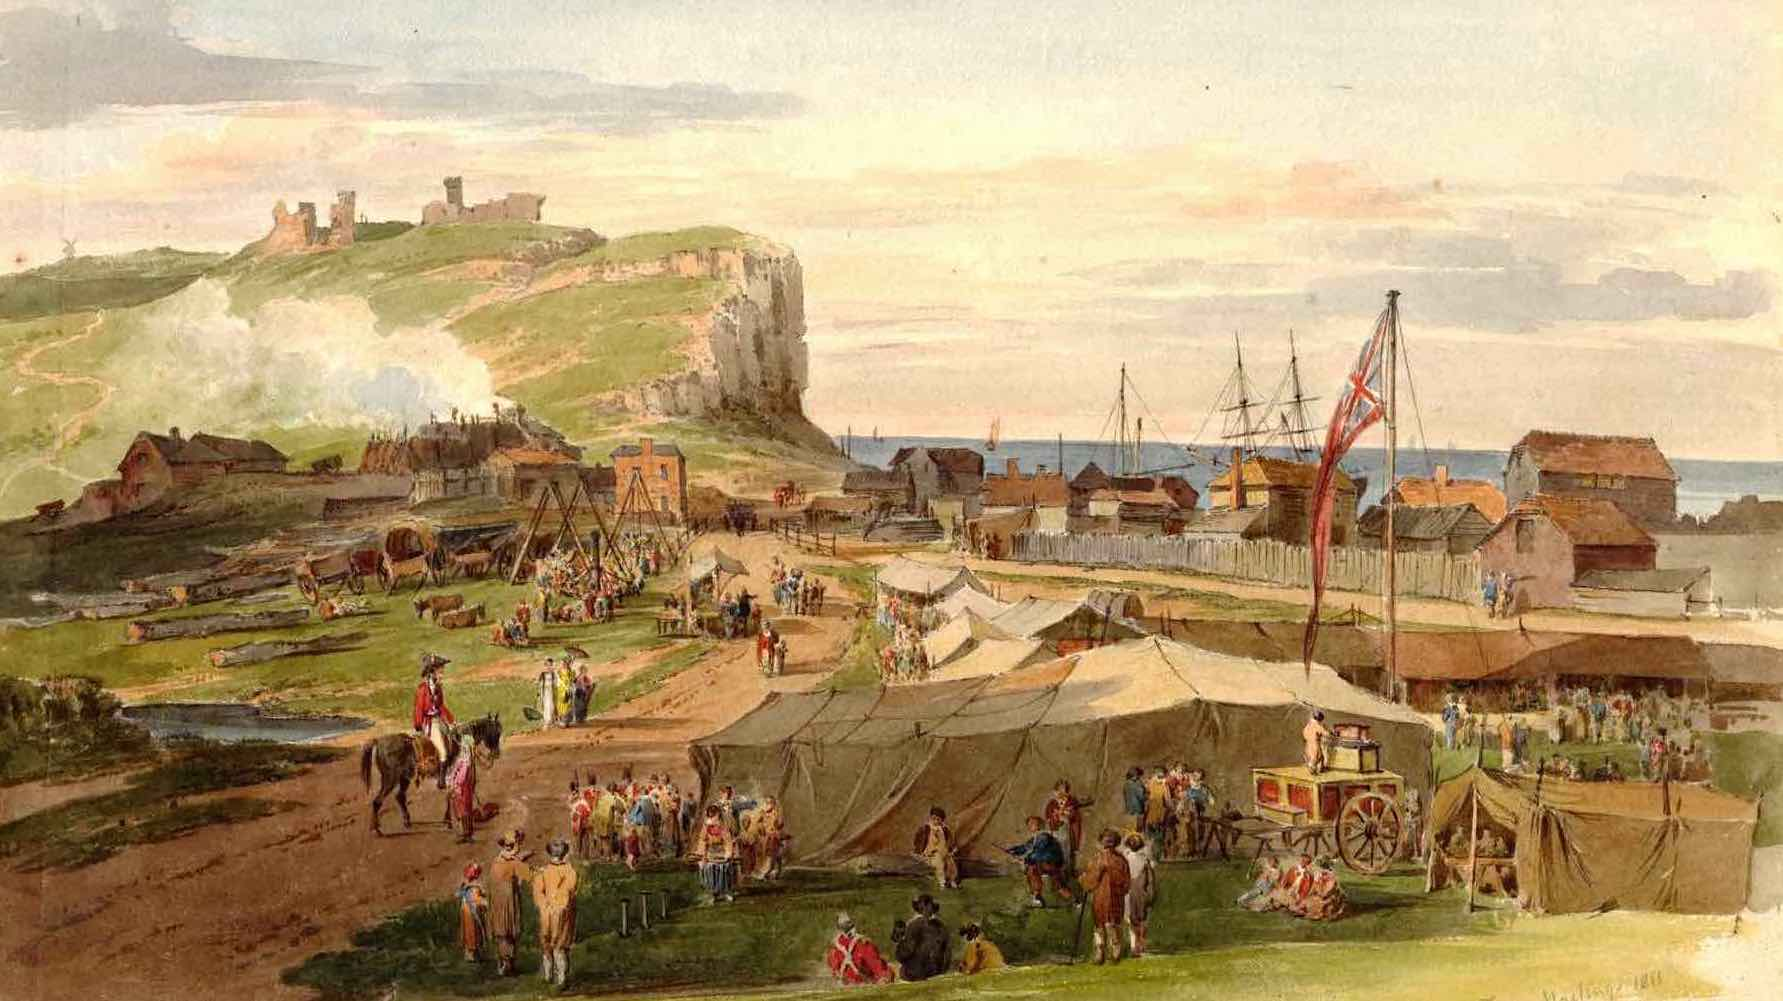 Painting of the Rock Fair, 1811 July by Paul Sandby Munn for Rock On, Rock Fair project by MSL Projects